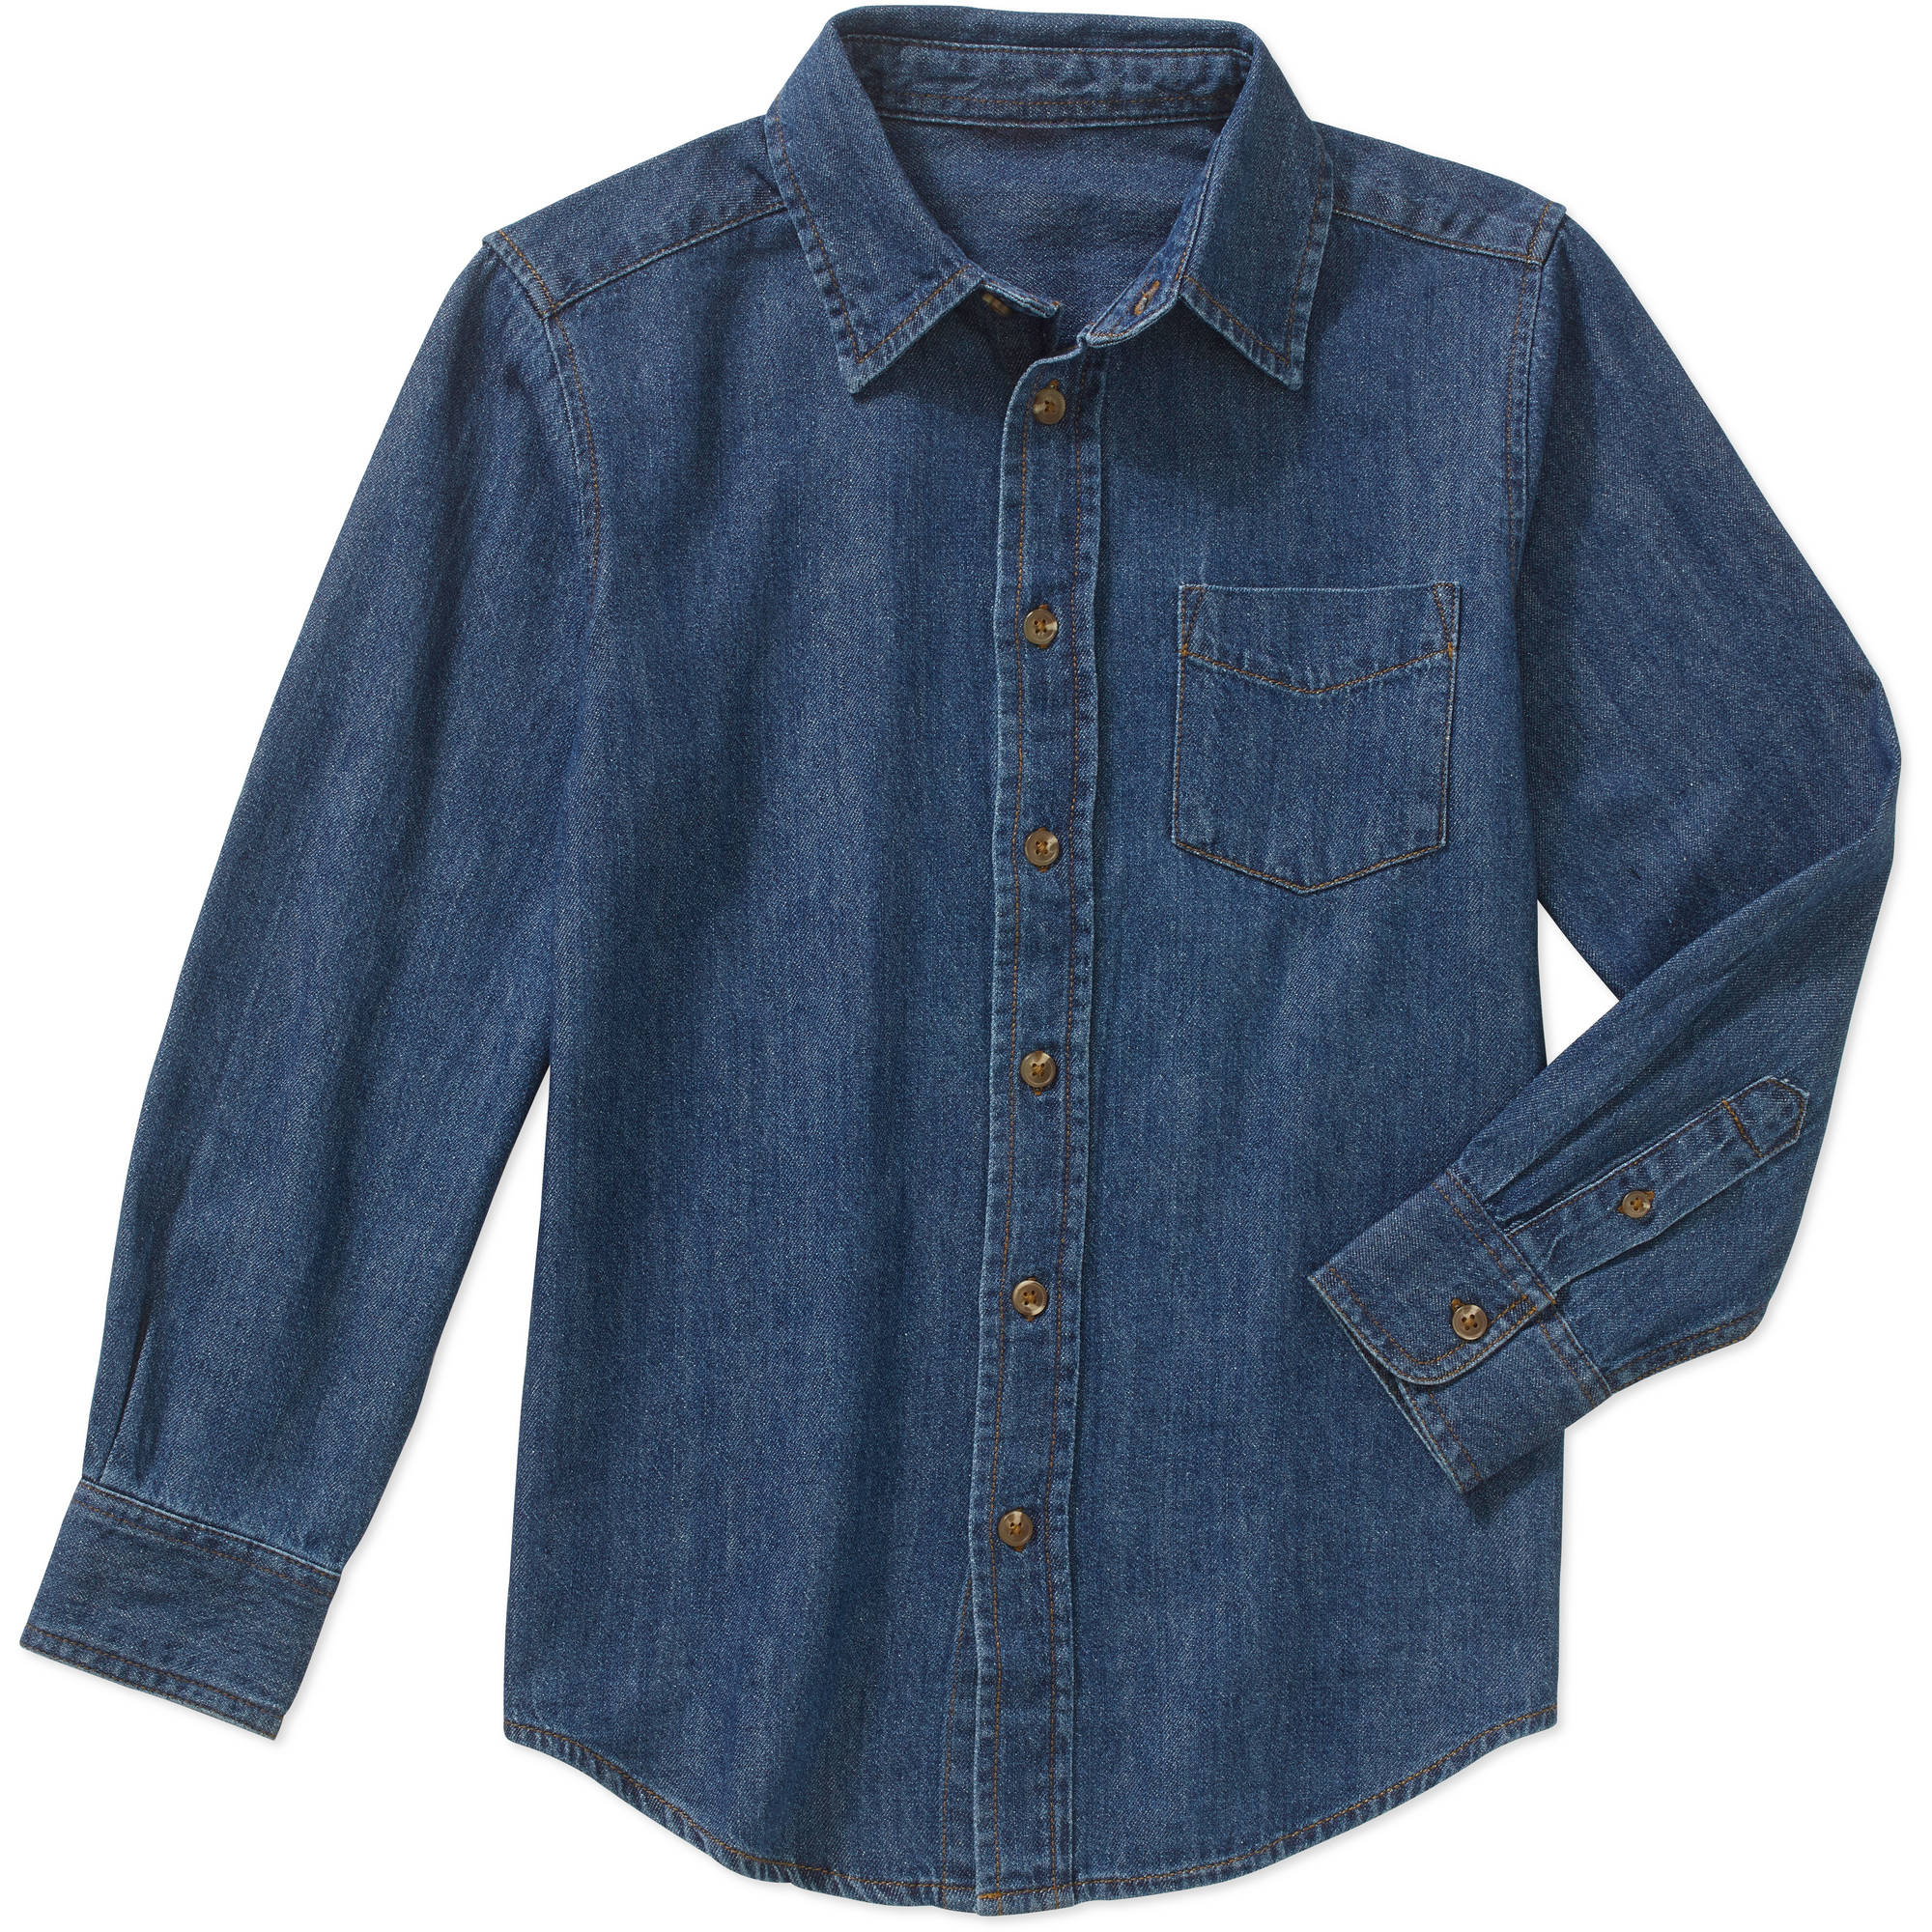 Boys' Long Sleeve Denim Shirt